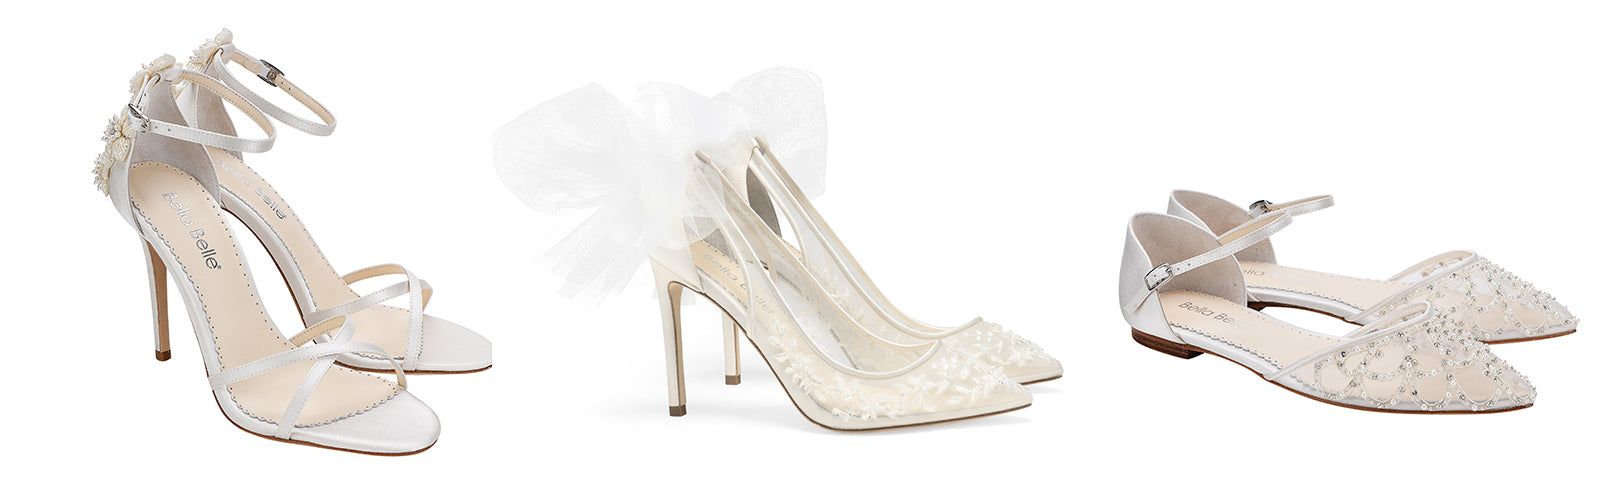 bella belle real brides zuhair murad wedding dress designer wedding shoes